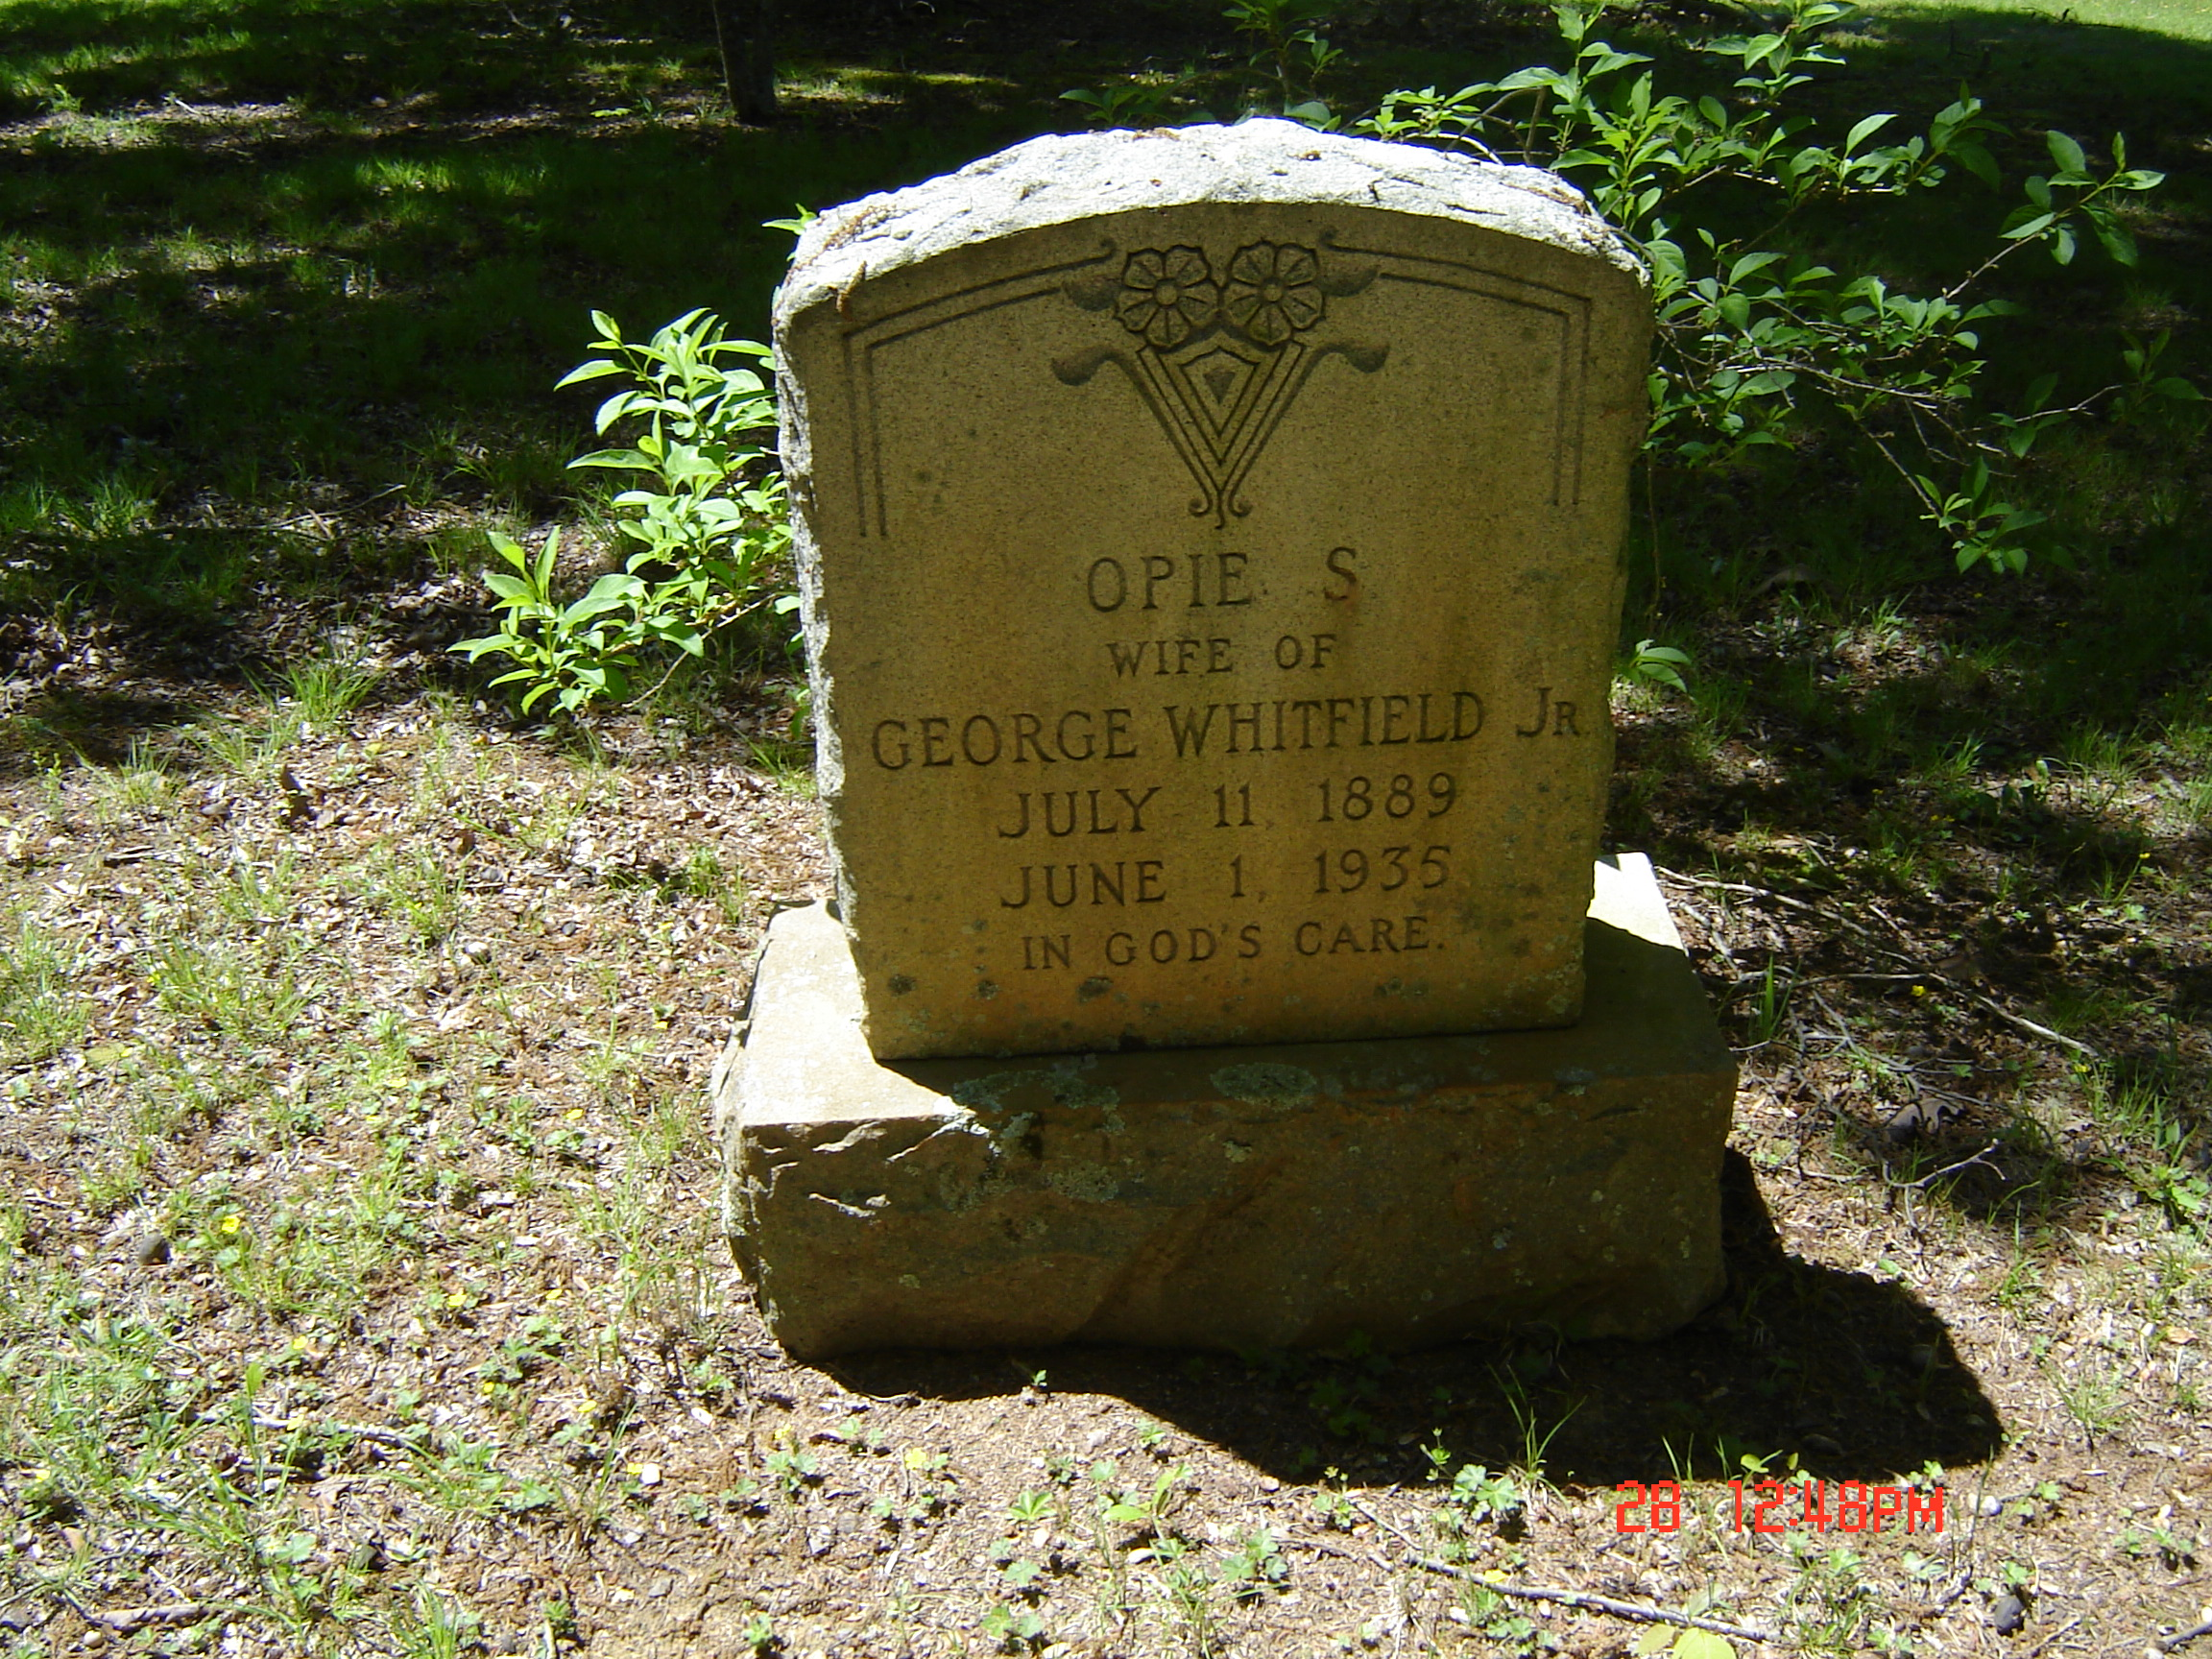 Ophia S Opie <i>Huff</i> Whitfield